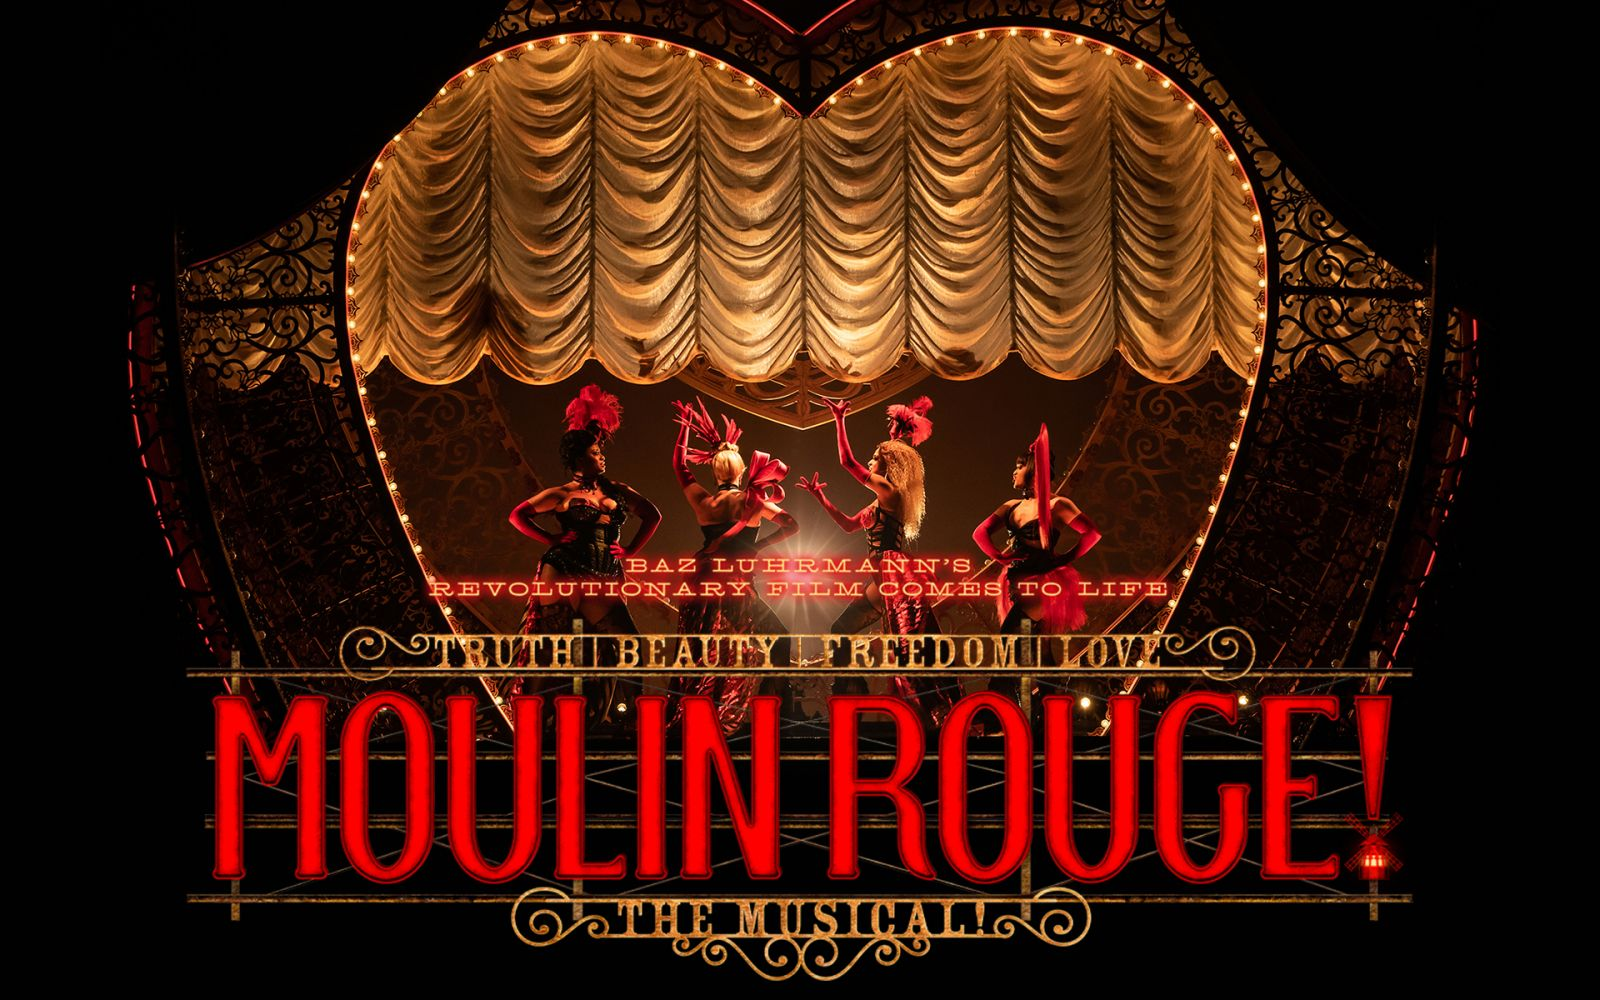 MOULIN ROUGUE! THE MUSICAL